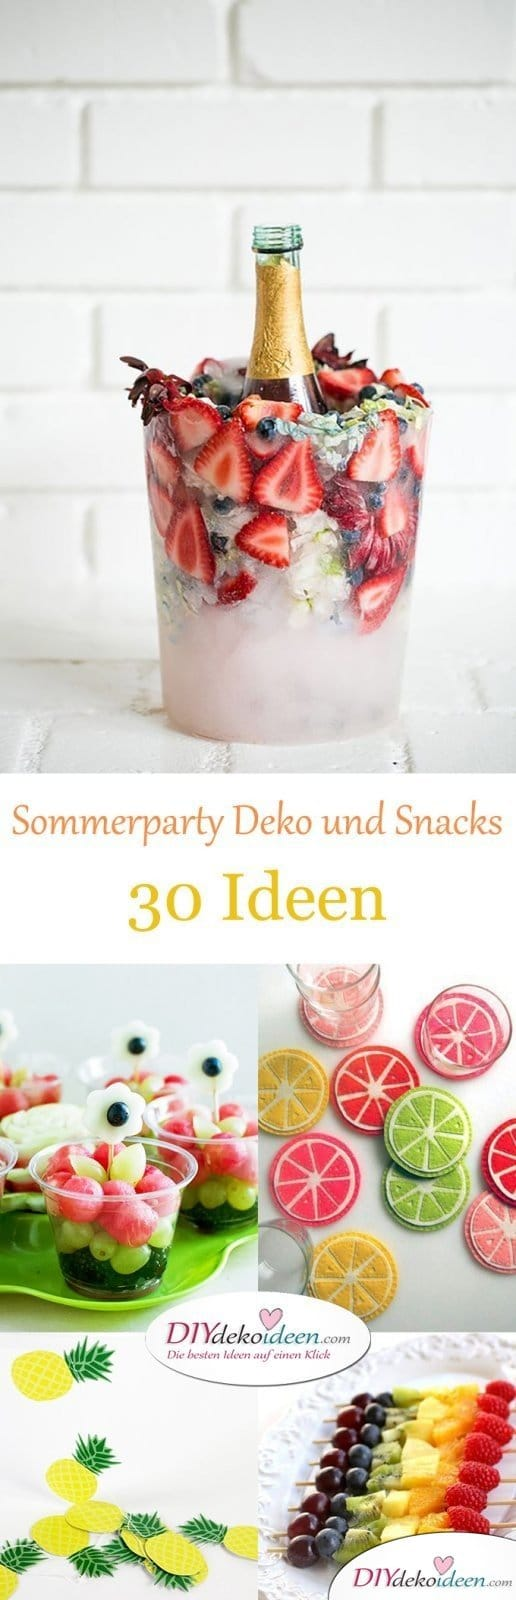 30 sommerparty deko und snack ideen diy dekoideen. Black Bedroom Furniture Sets. Home Design Ideas